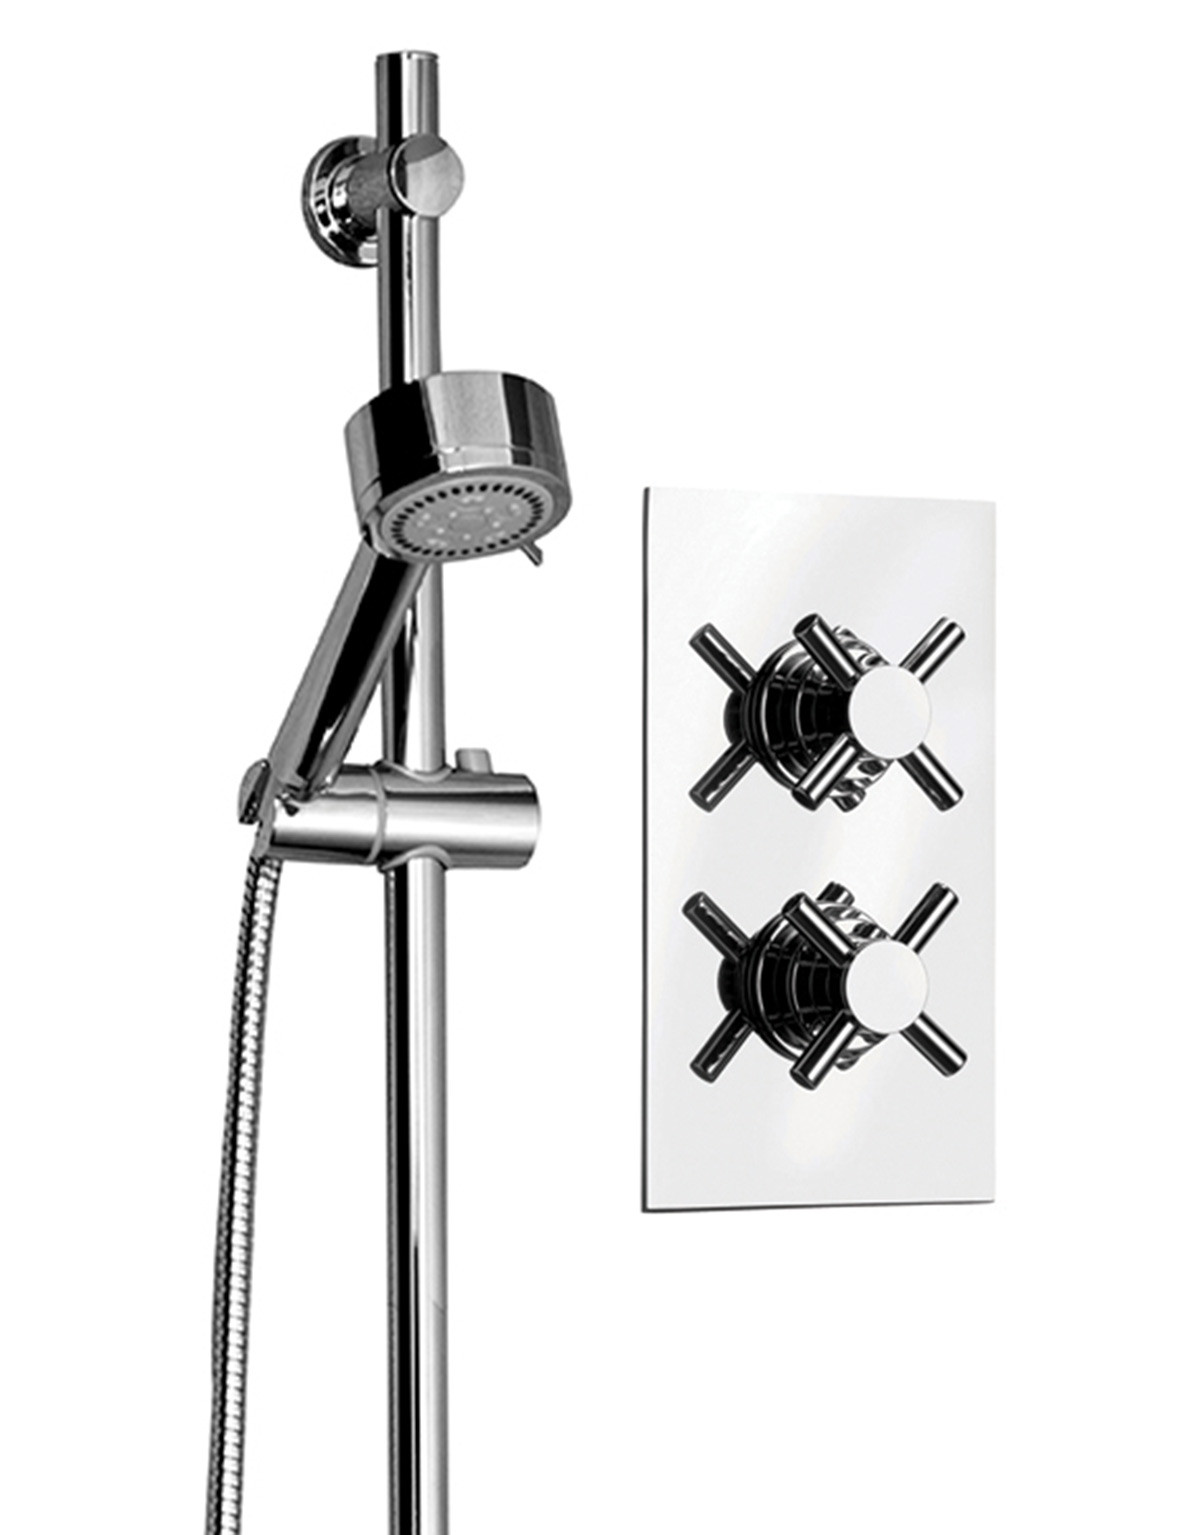 Cross Twin Thermostatic Valve With Tyne Slide Rail Kit & Round Shower Elbow